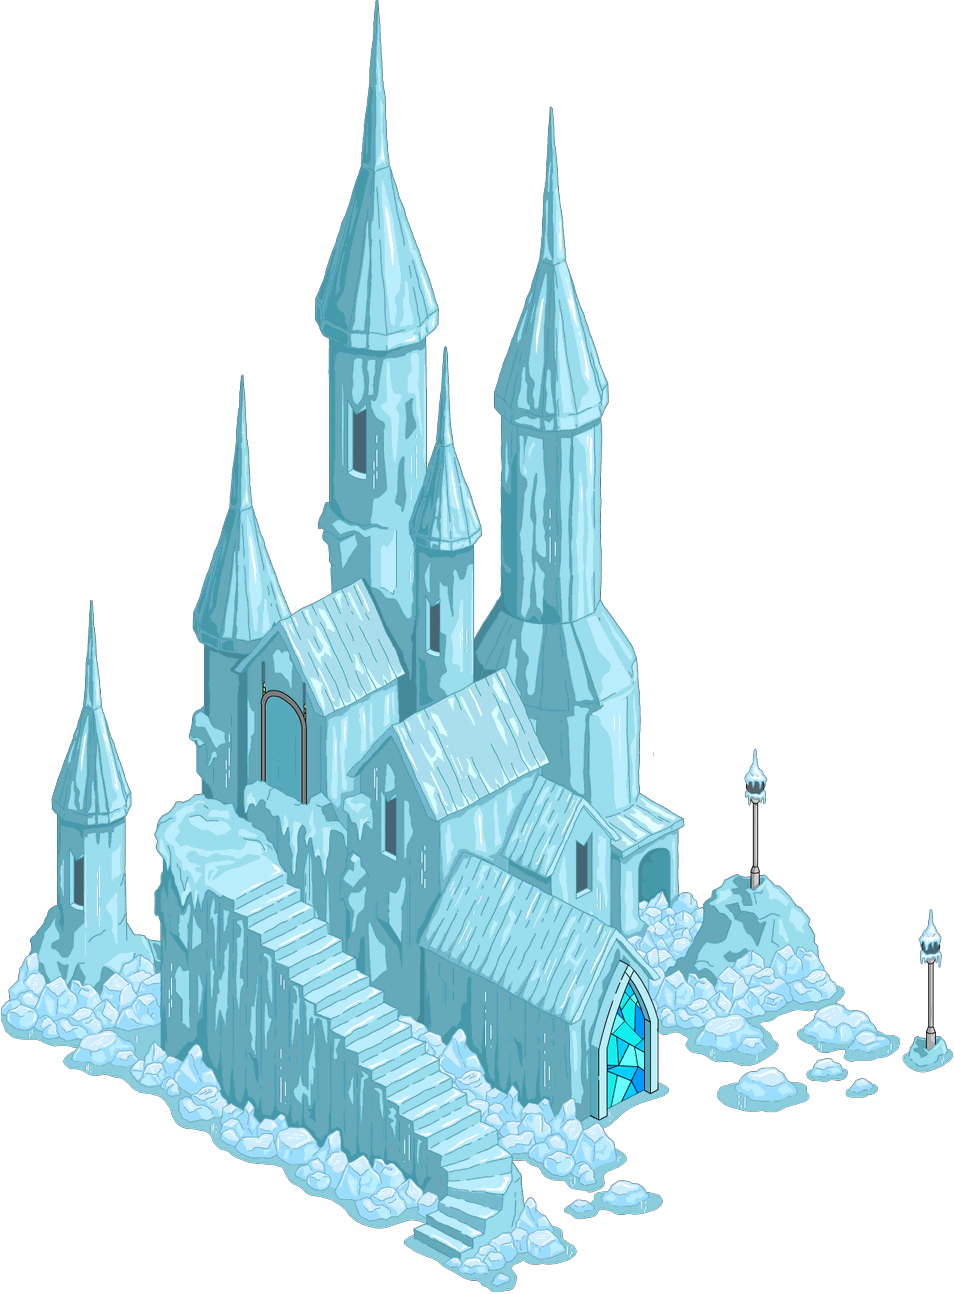 Transparent castle palace. Ice png images pluspng